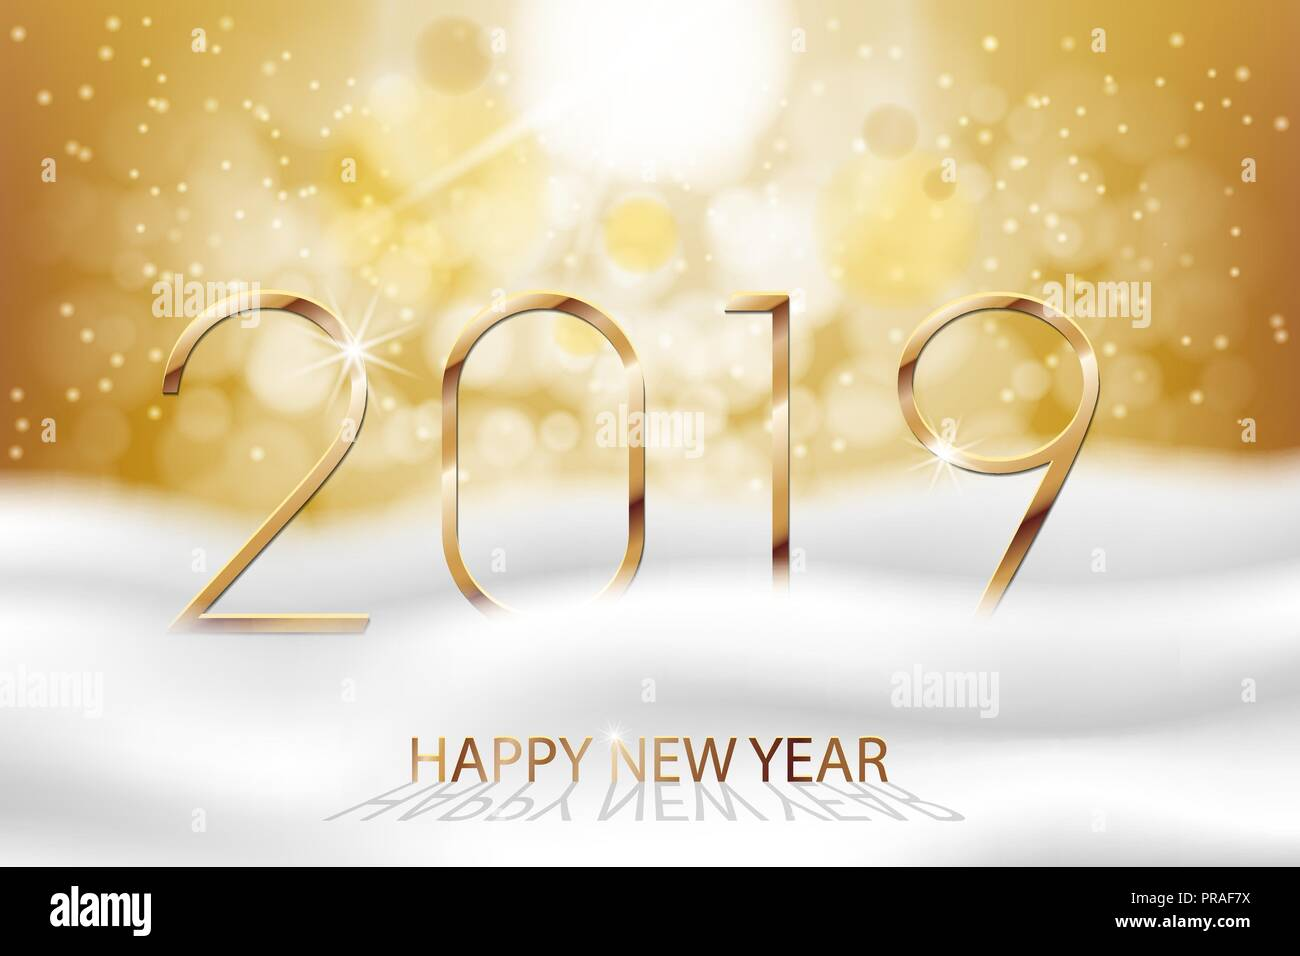 Vector Happy New Year 2019 New Year Colorful Winter Background